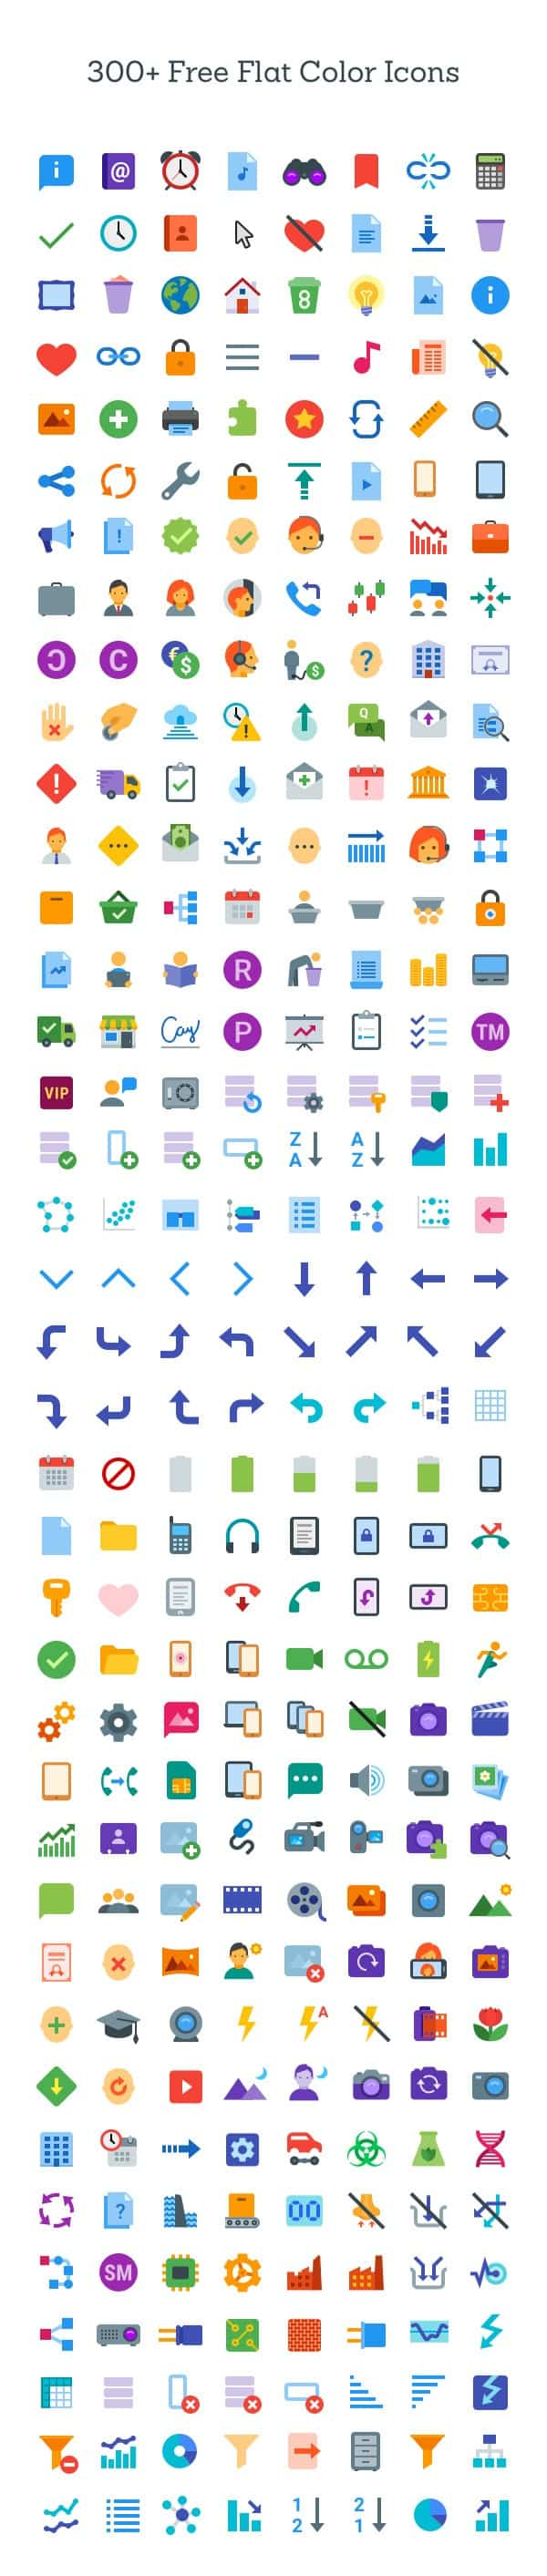 300+ Flat Color Icons | GraphicBurger